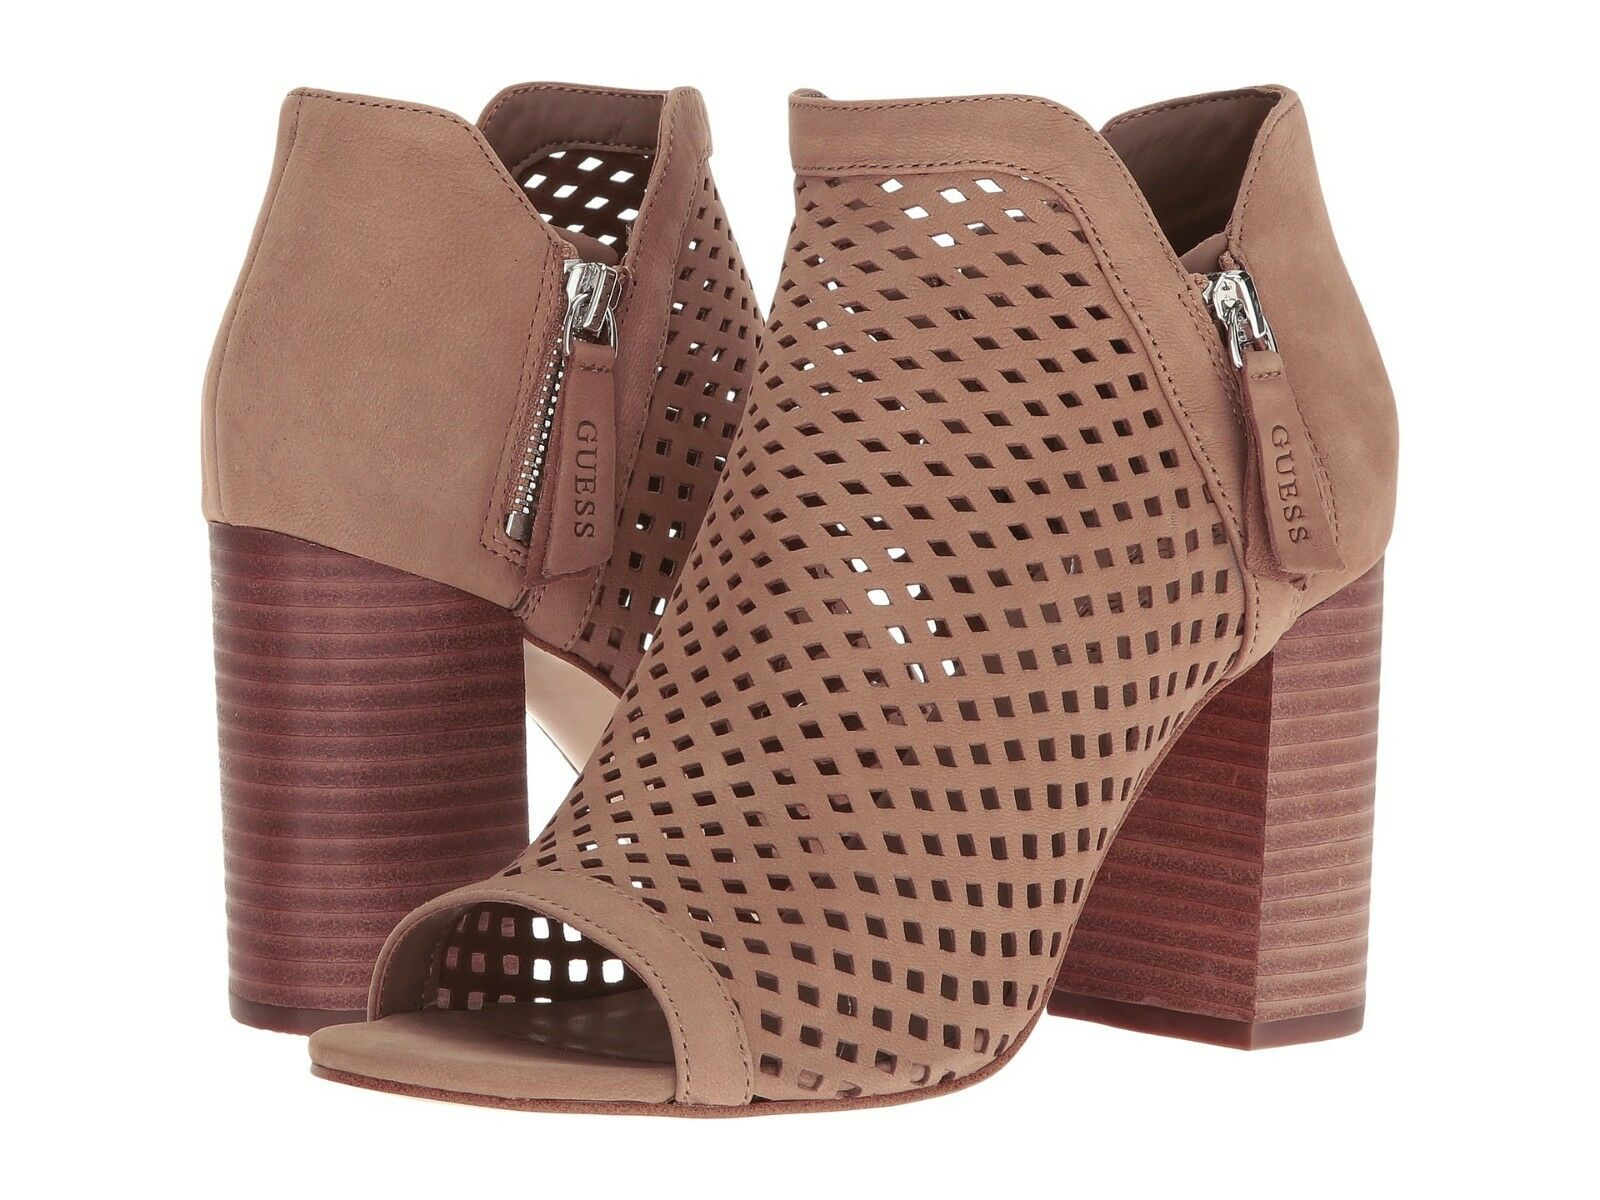 GUESS Women's Oana Ankle Bootie Taupe Size 7.5